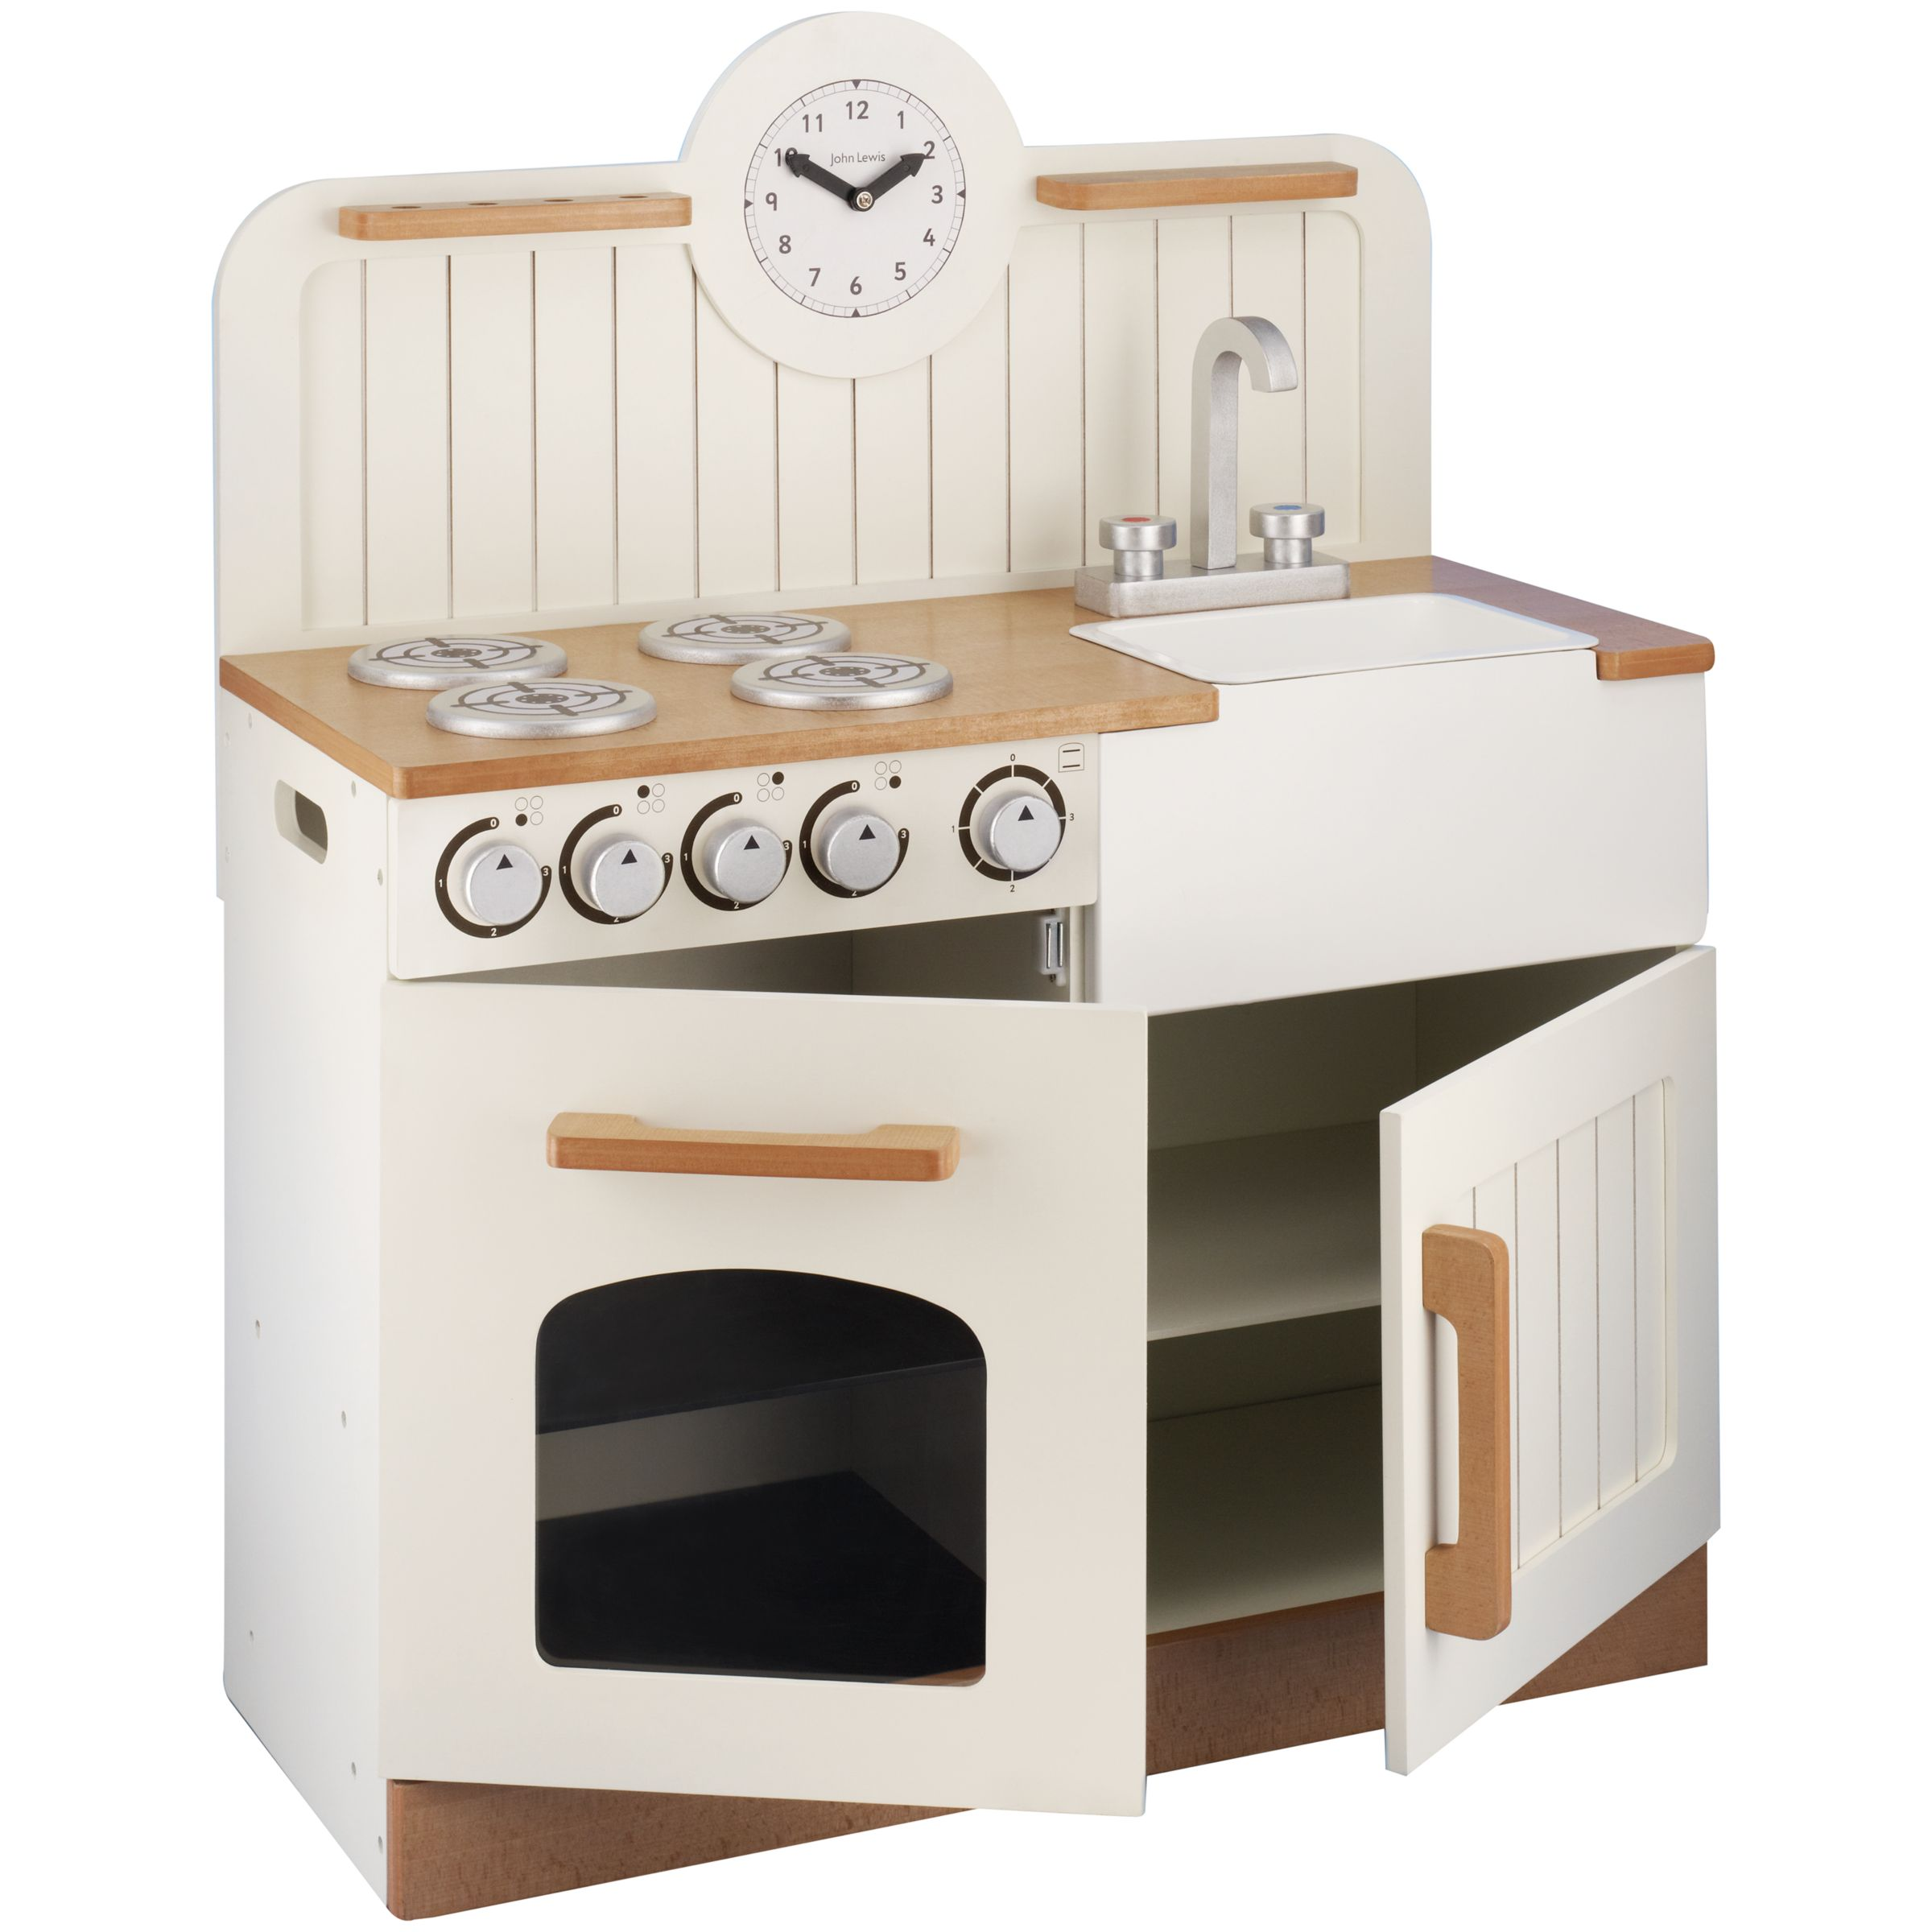 Buy Kitchens: Buy John Lewis Country Play Wooden Kitchen